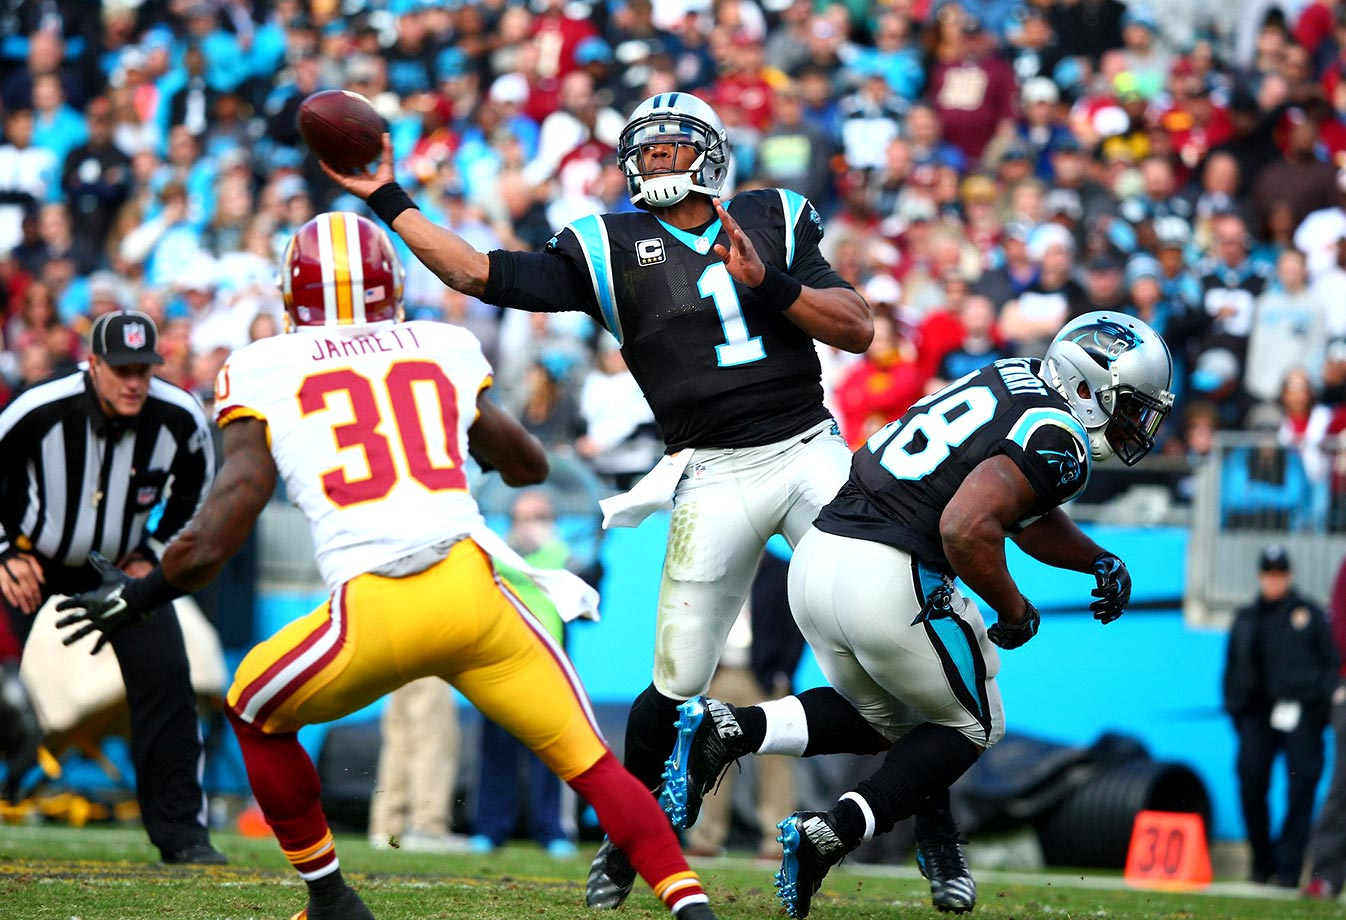 Cam Newton throws a pass against the Washington Redskins during a November 2015 game at Bank of America Stadium in Charlotte. His five touchdown passes helped the Panthers win 44-16.                                                              Text credit: Daniel Hersh